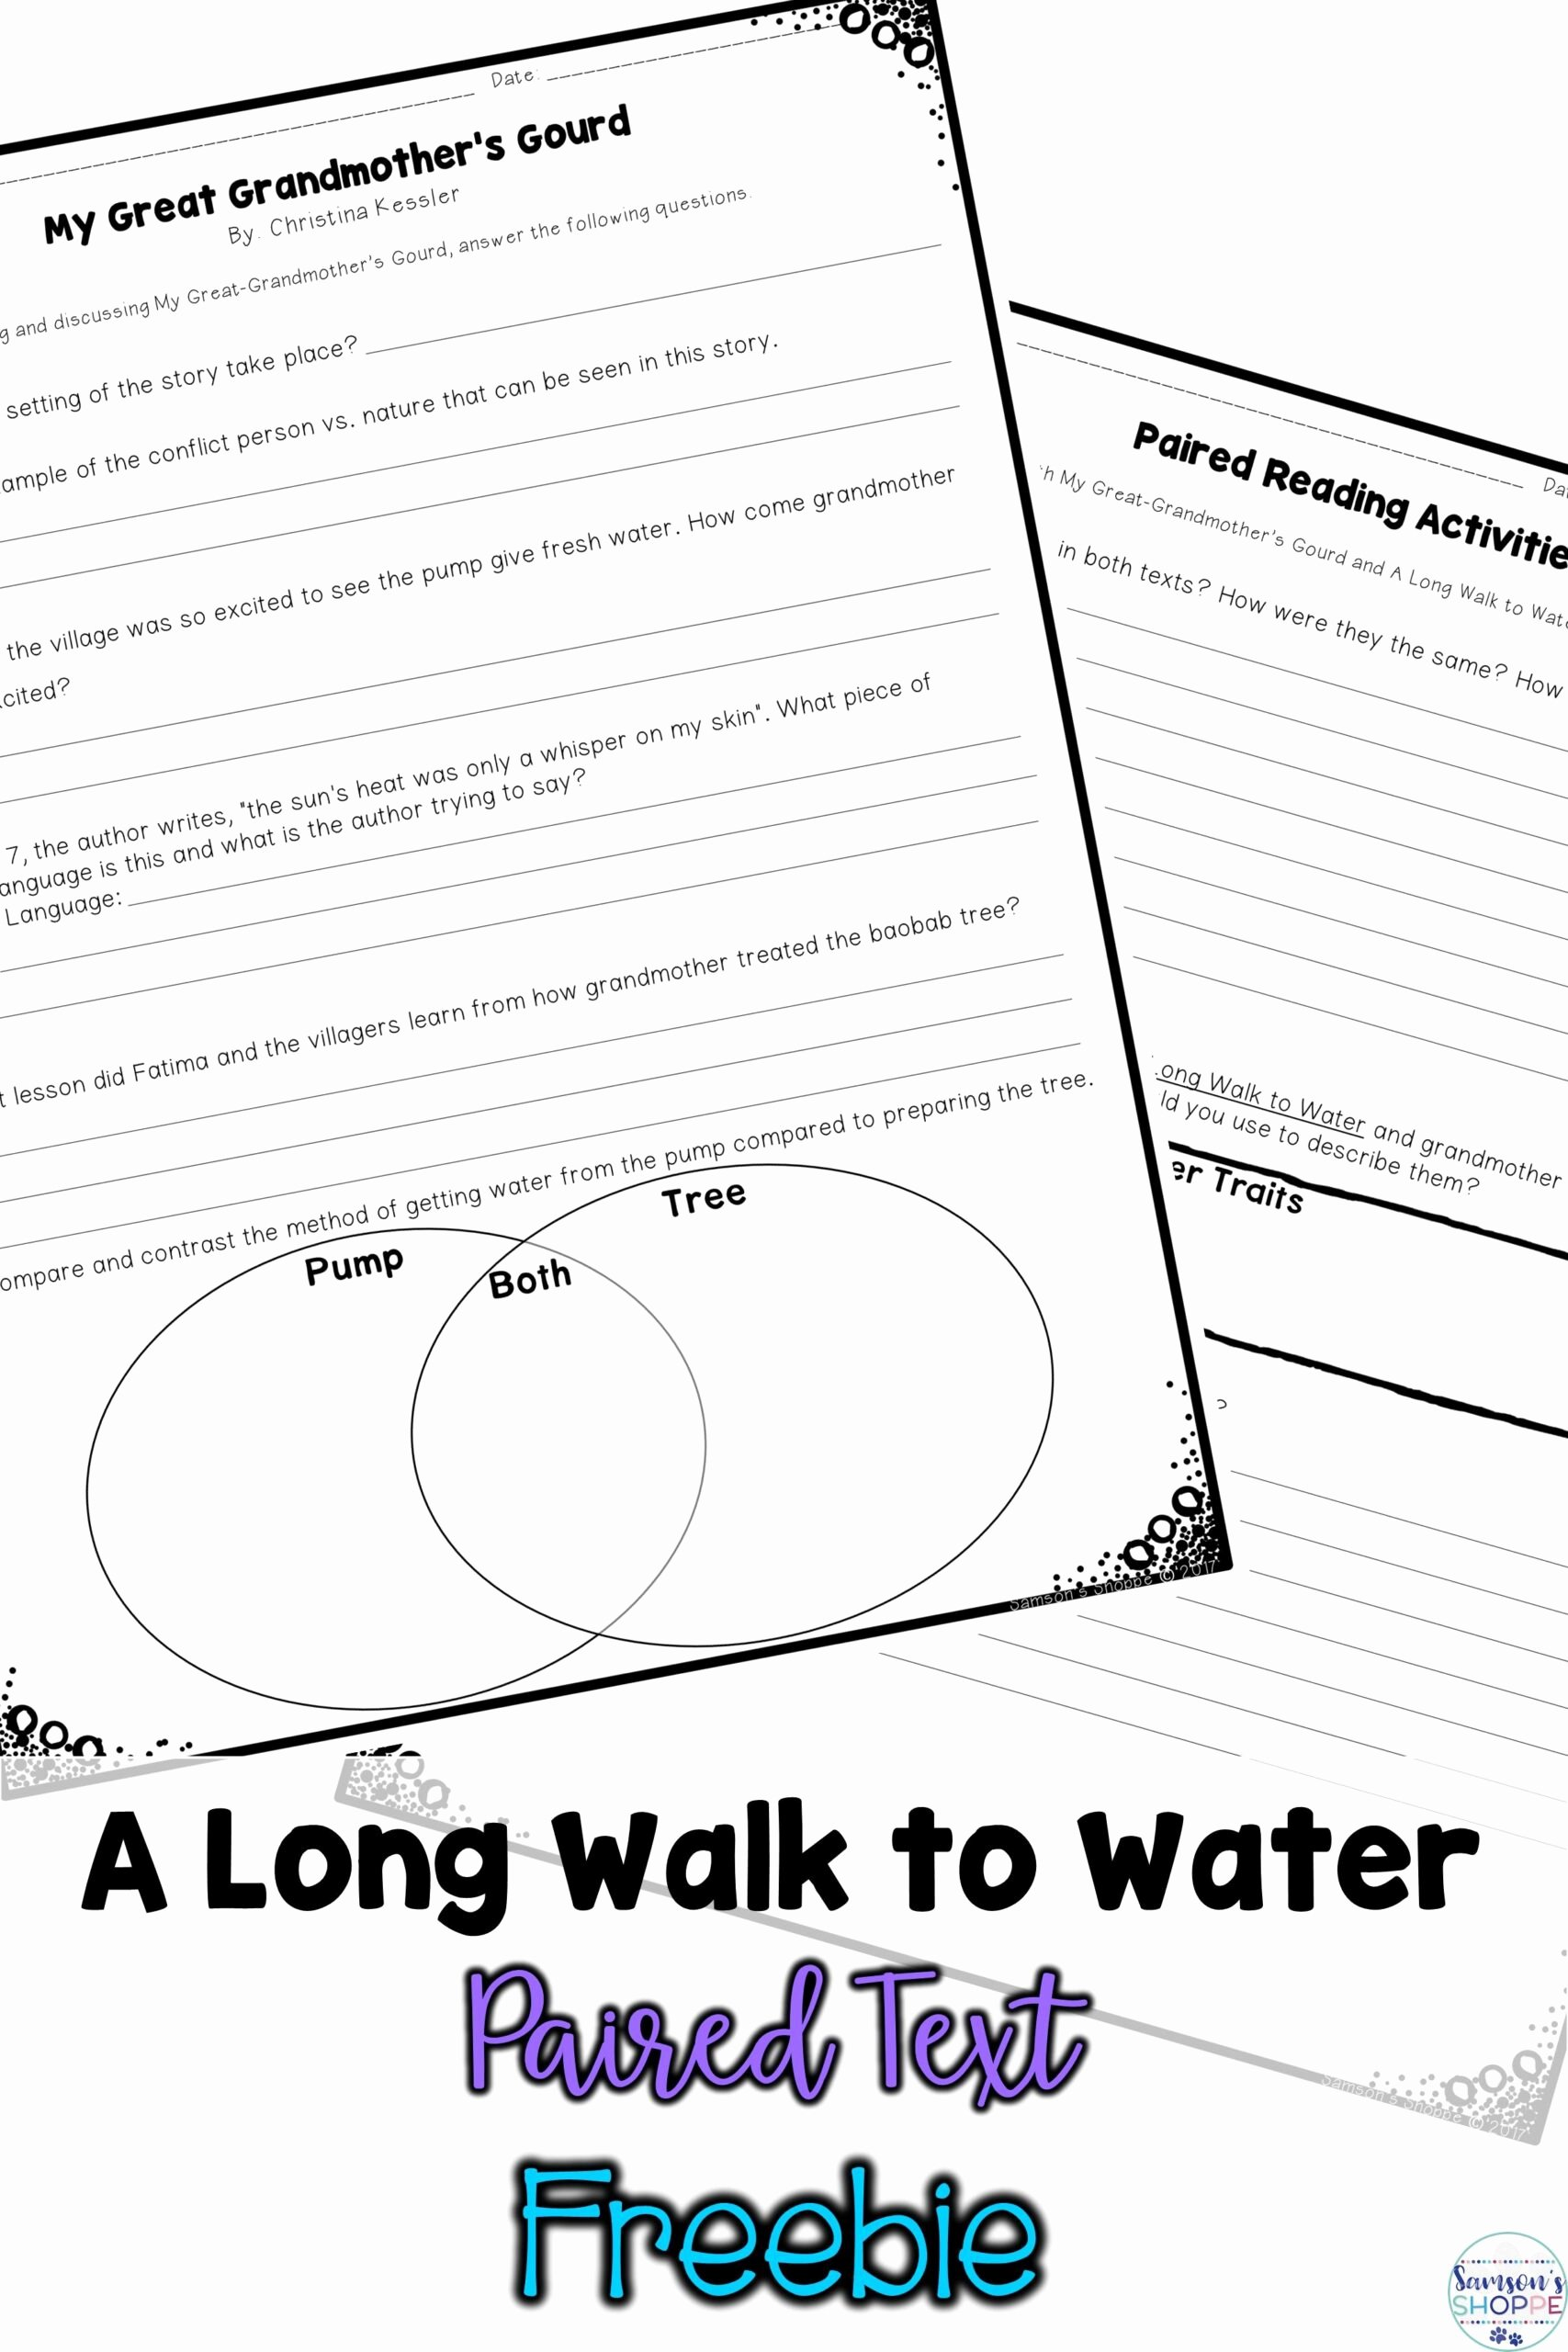 Pairing Worksheets for Preschoolers New Walk to Water Paired Text Using My Great Grandmother